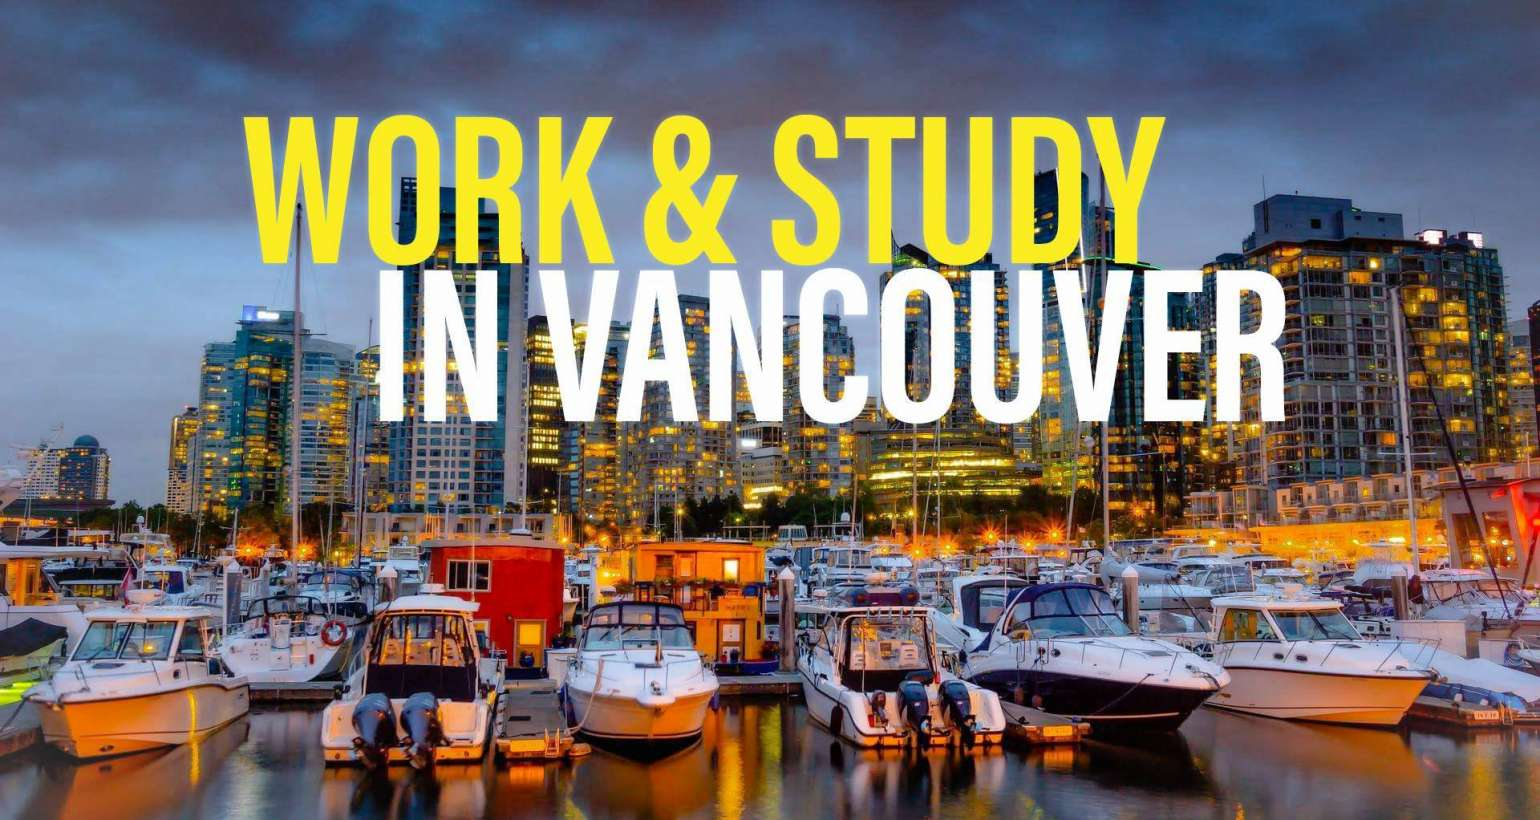 Work and study in Vancouver